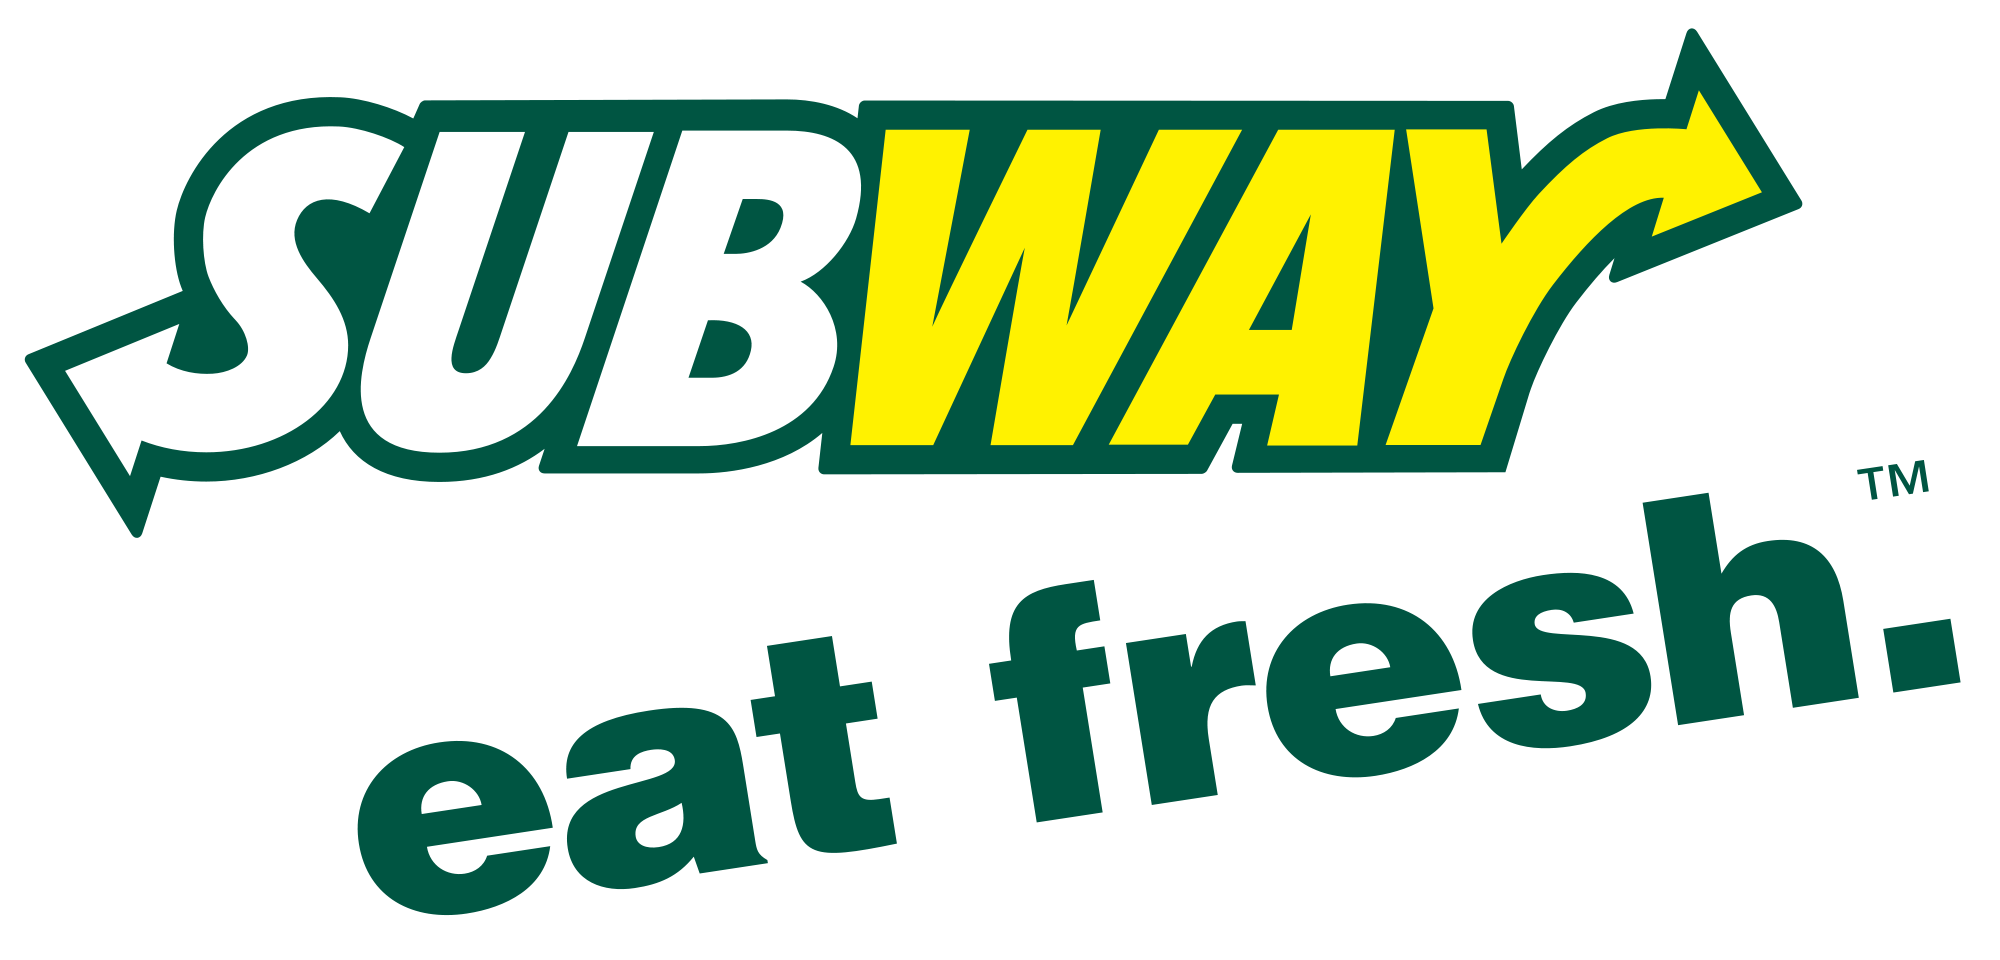 https://www.sayitnow.com.au/wp-content/uploads/2016/05/subway.png